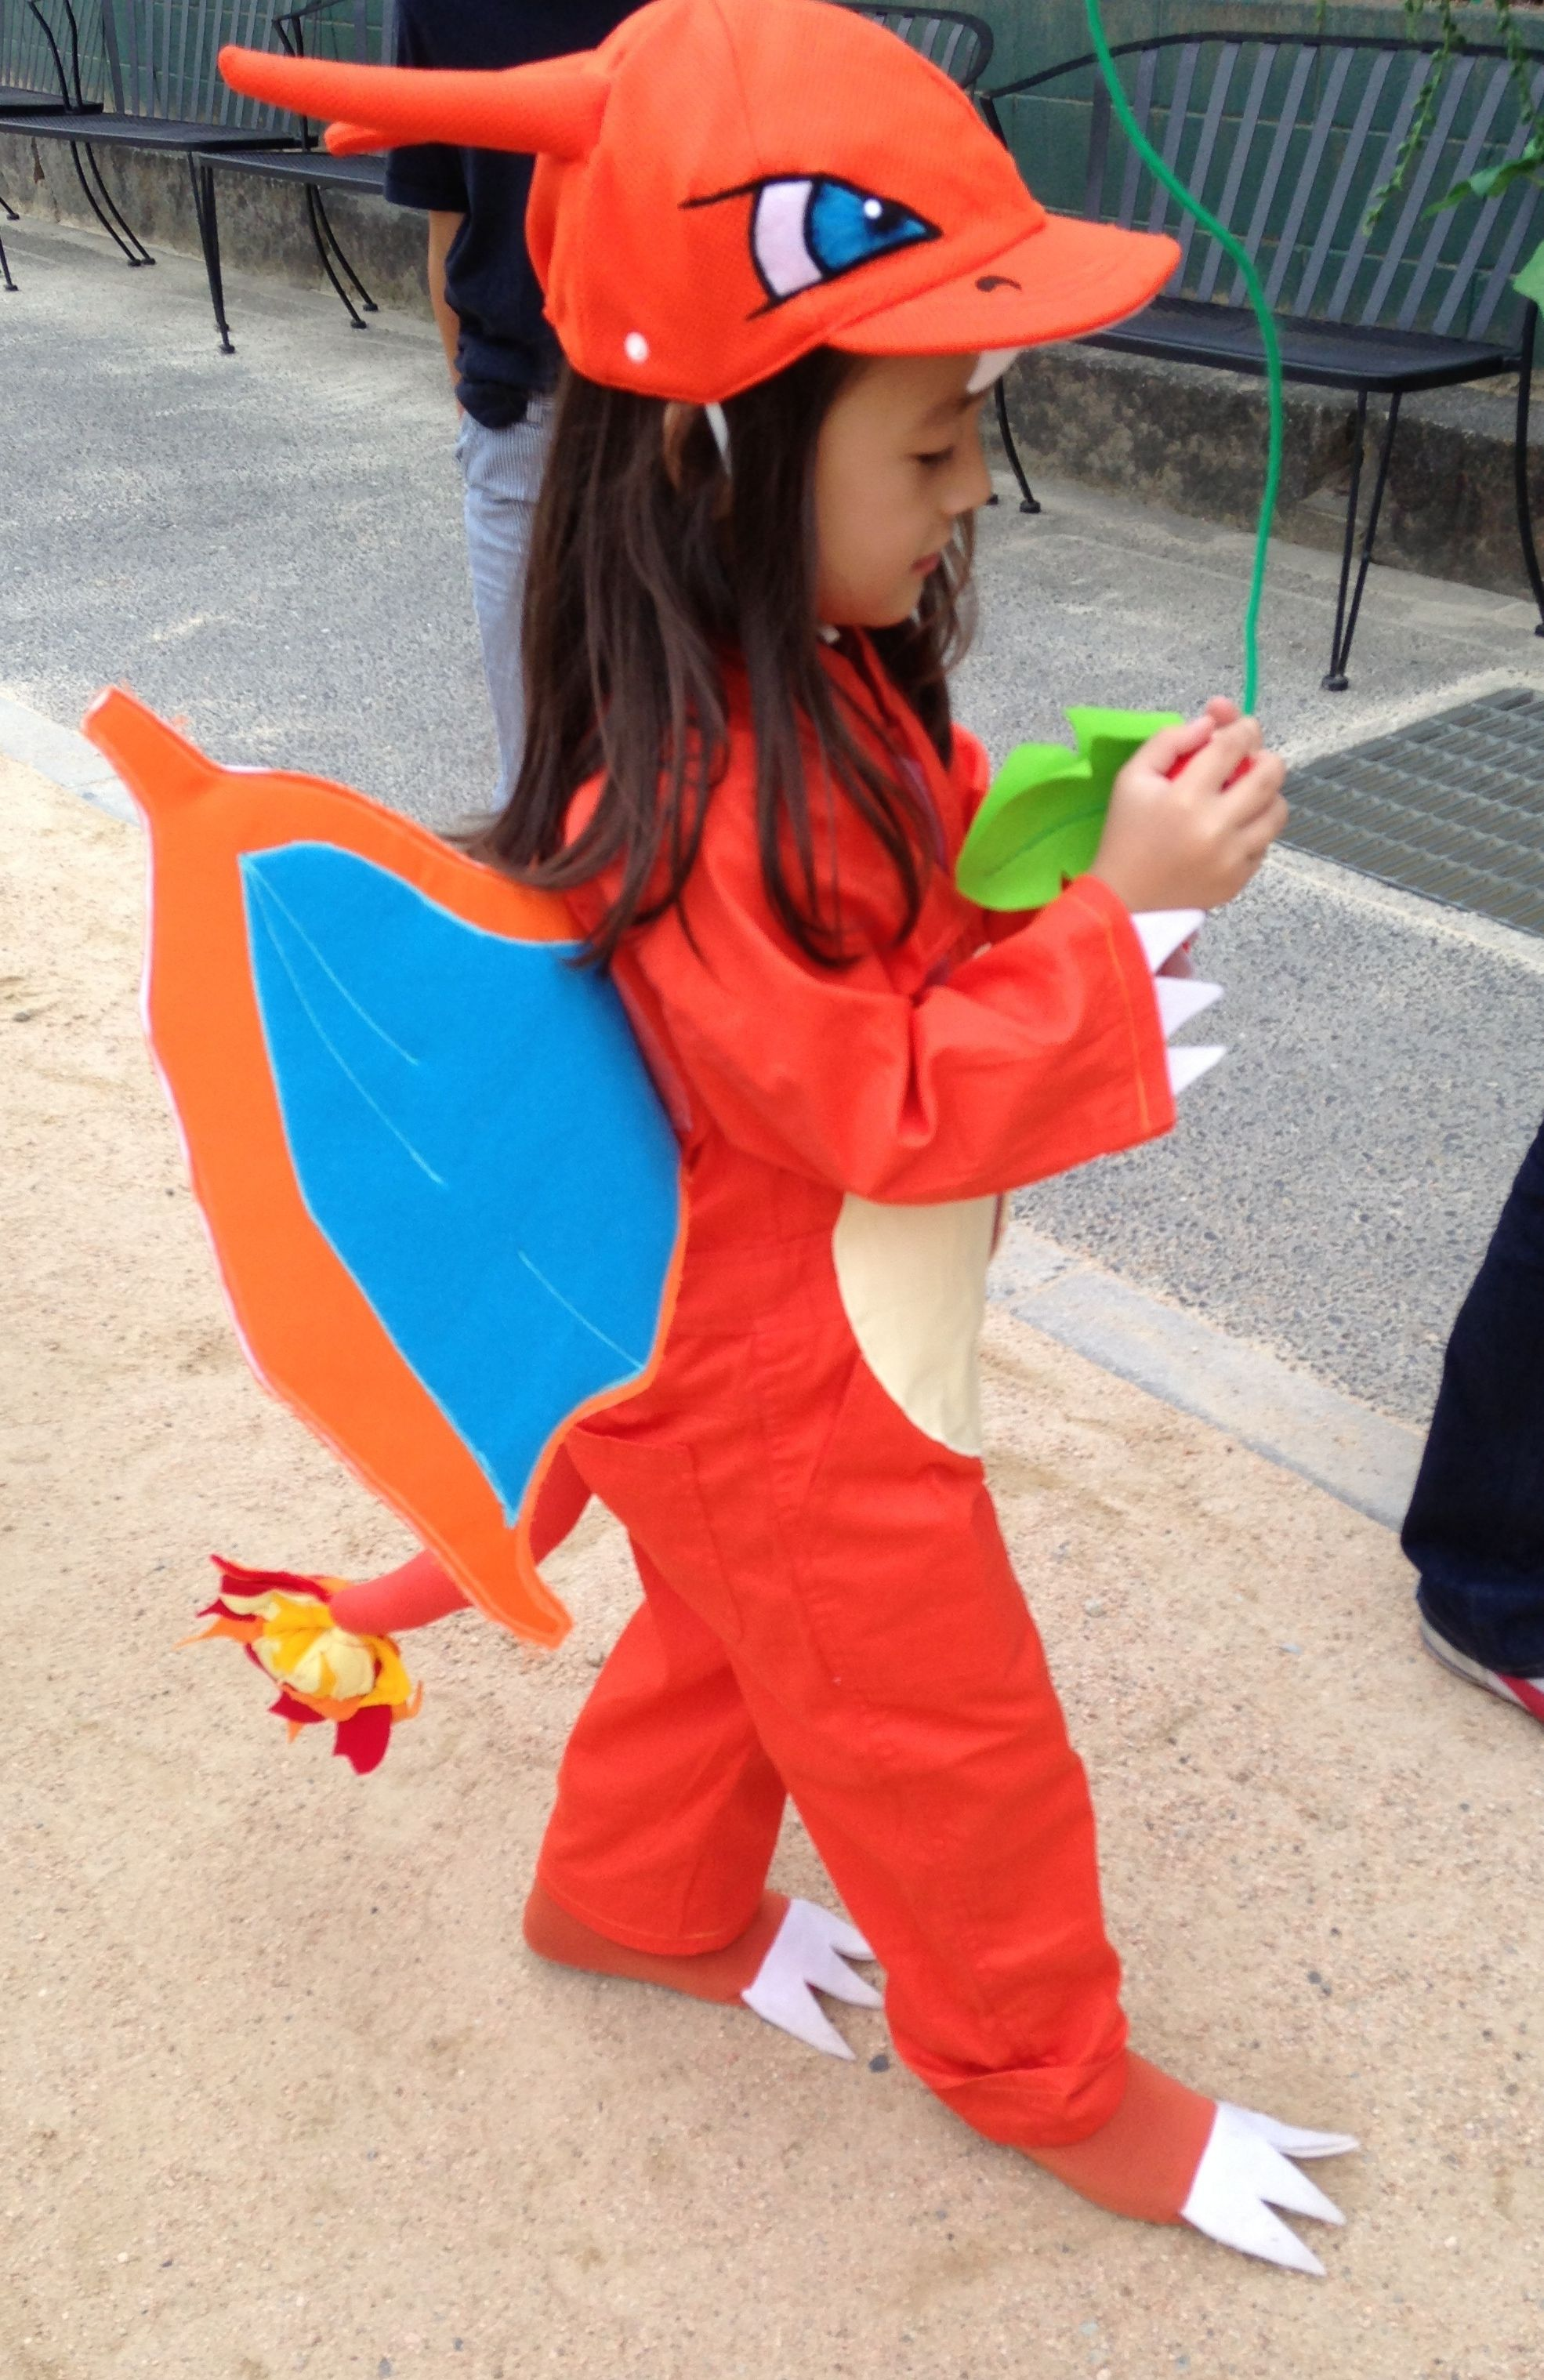 Charizard Costume & How to Make a Charizard Costume | Pinterest | Charizard Costumes ...